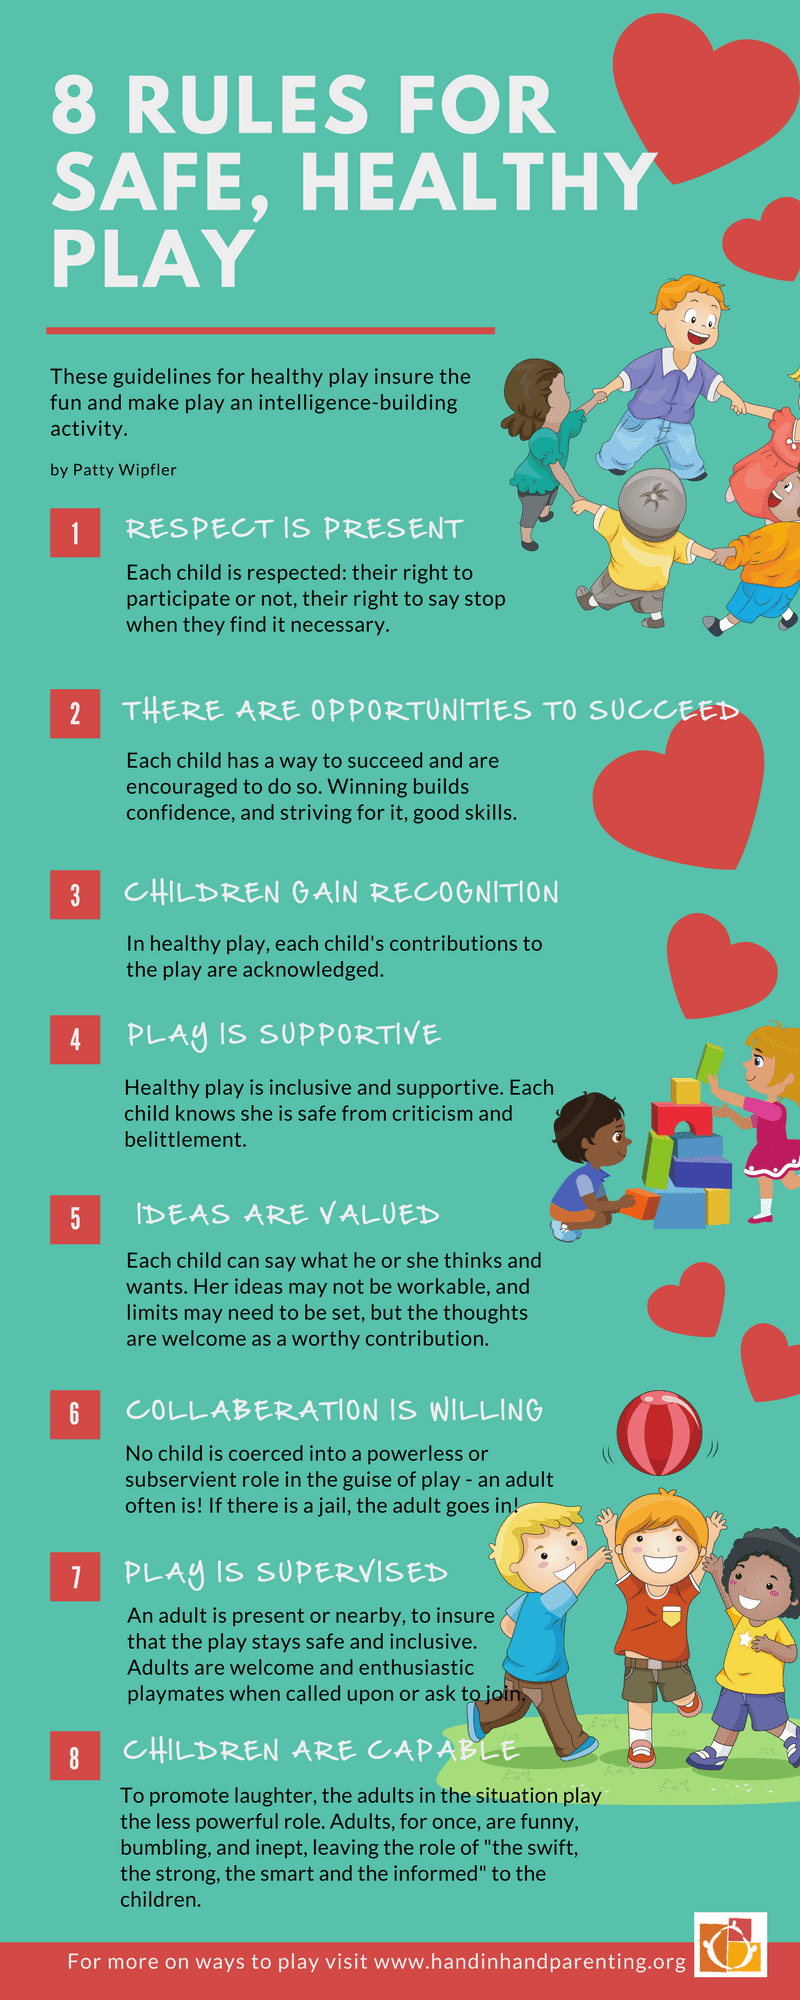 8 Rules For Safe And Healthy Play #infographic